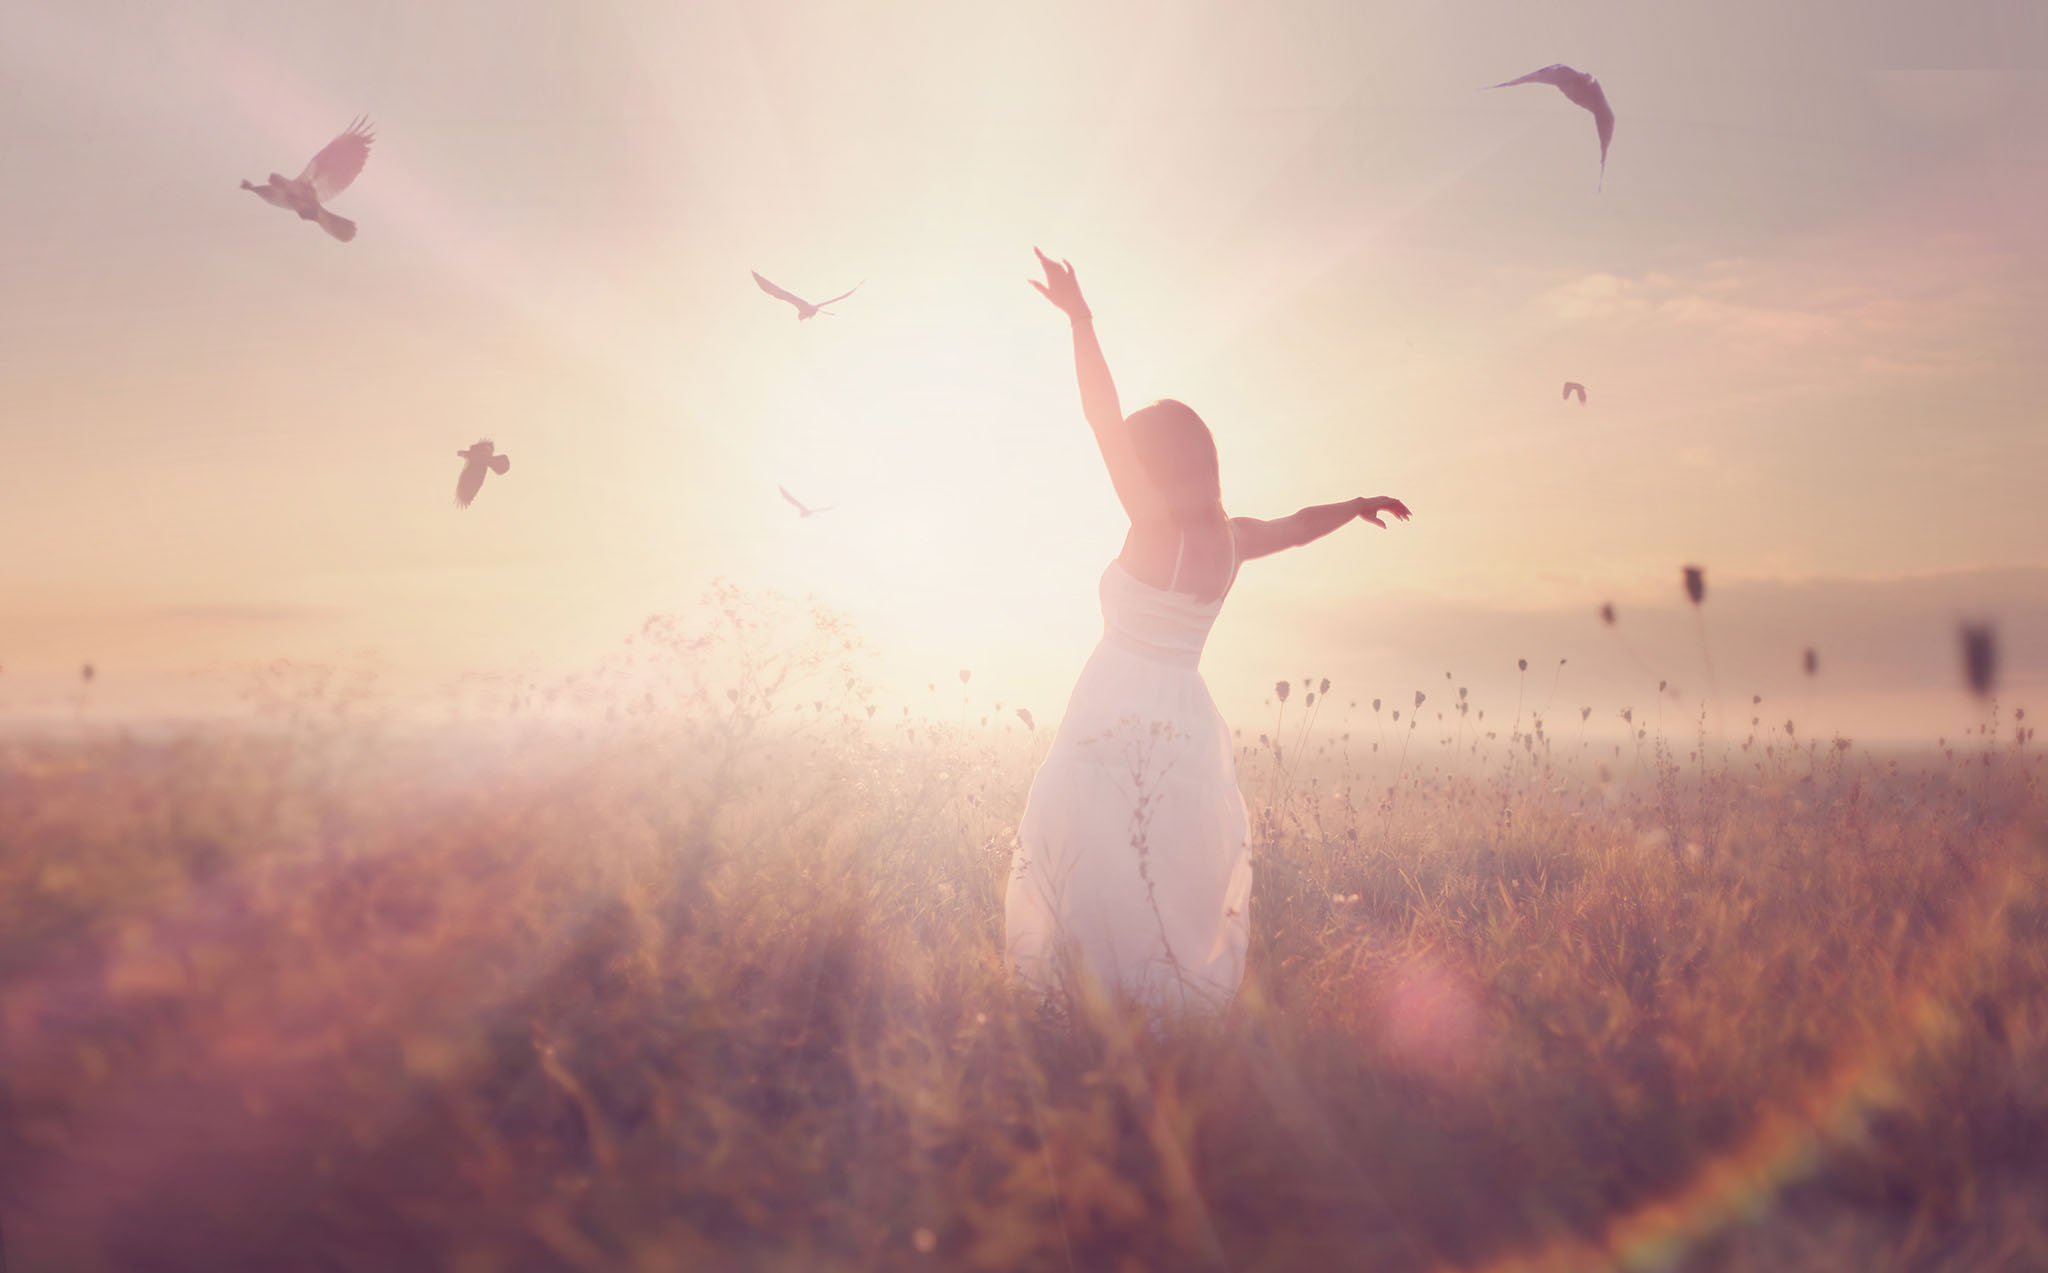 silhouette of a young girl in a field, at sunrise with flying birds in the sky